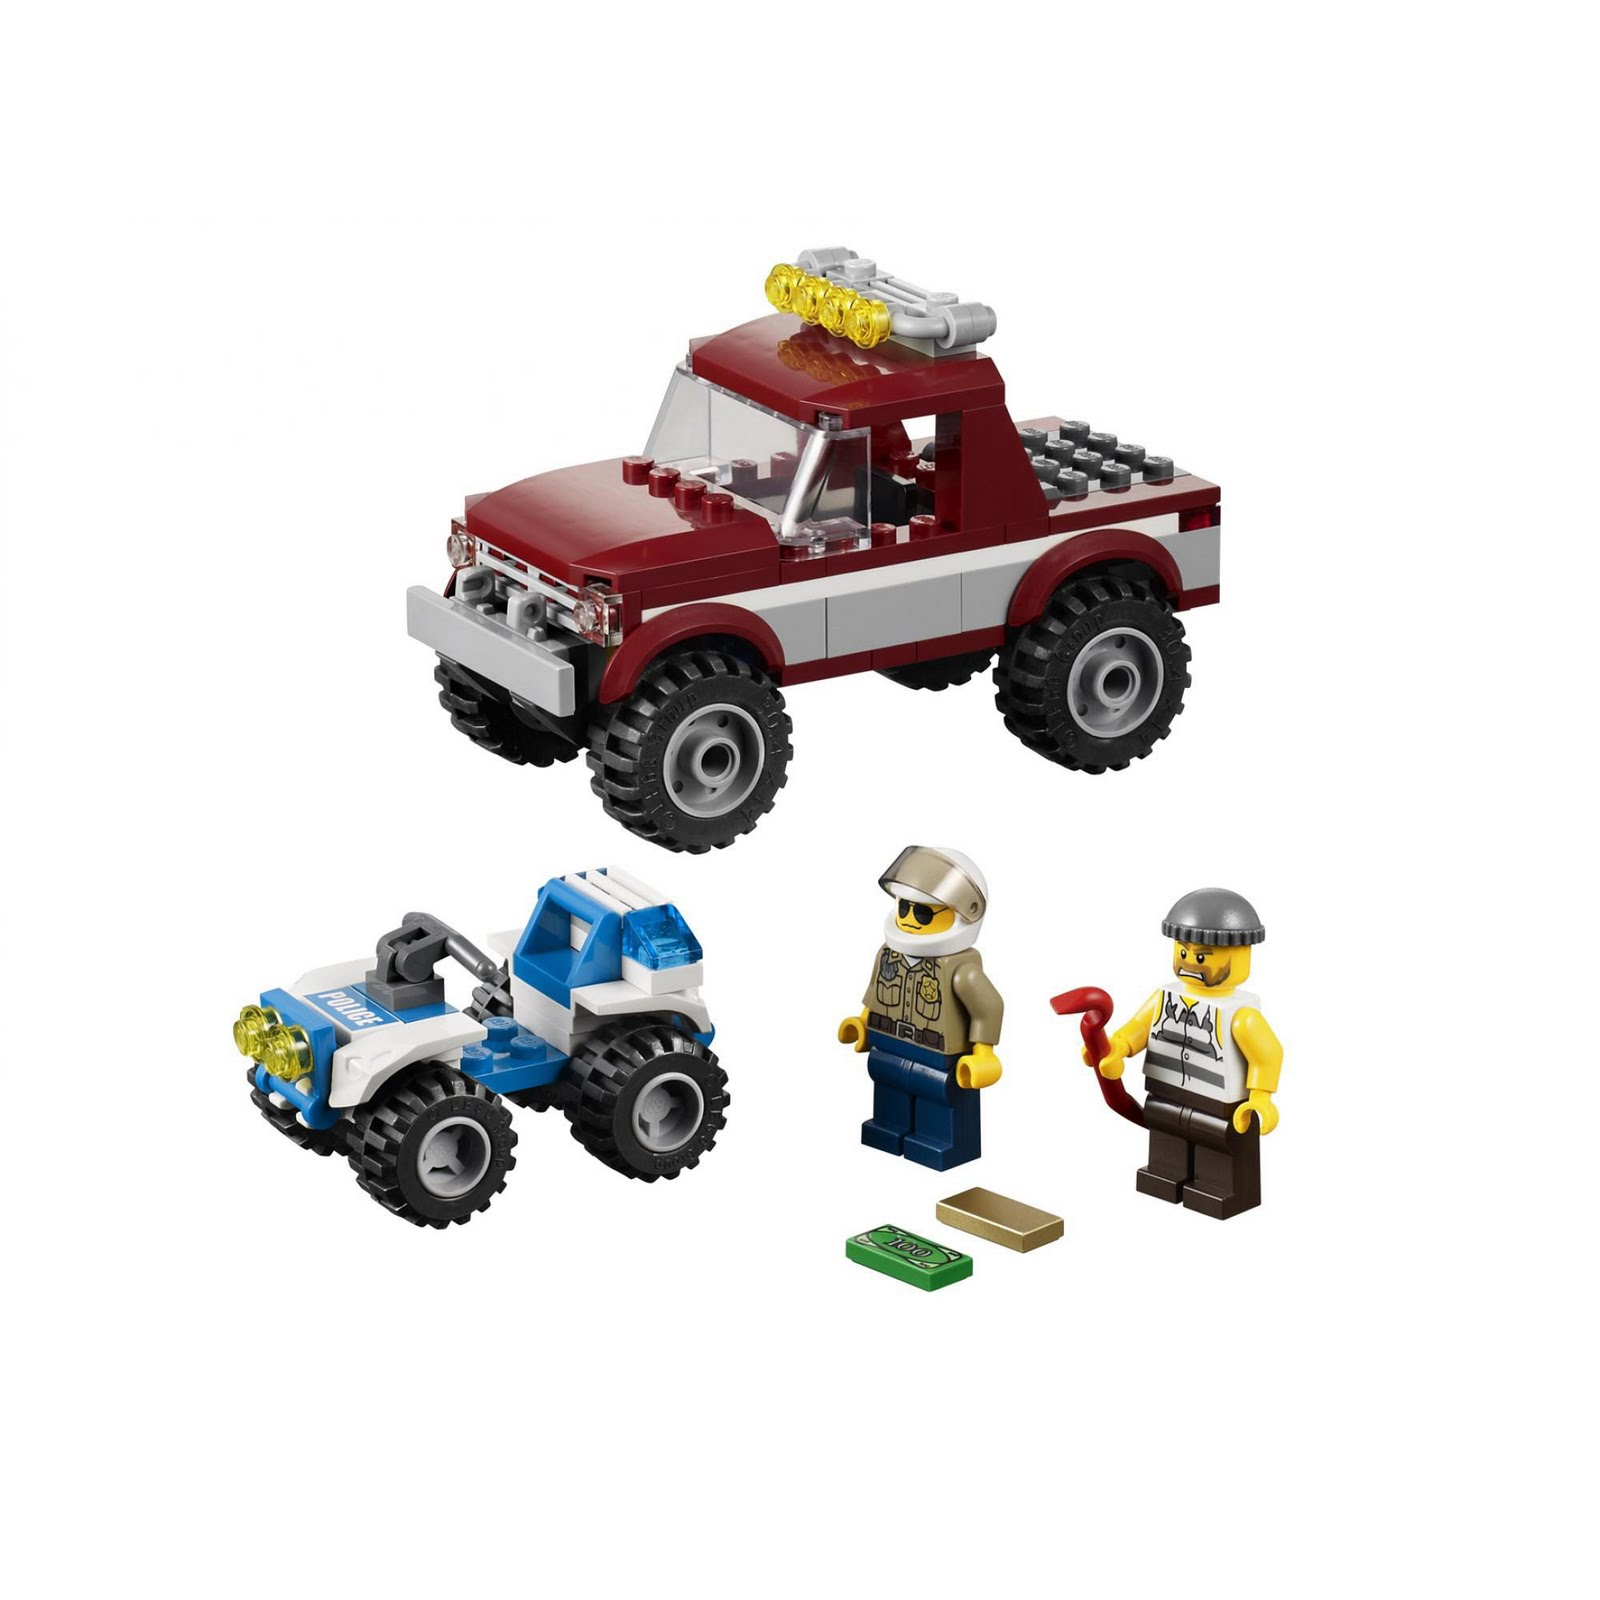 REPUBbLICk: set database: LEGO 4437 police pursuit